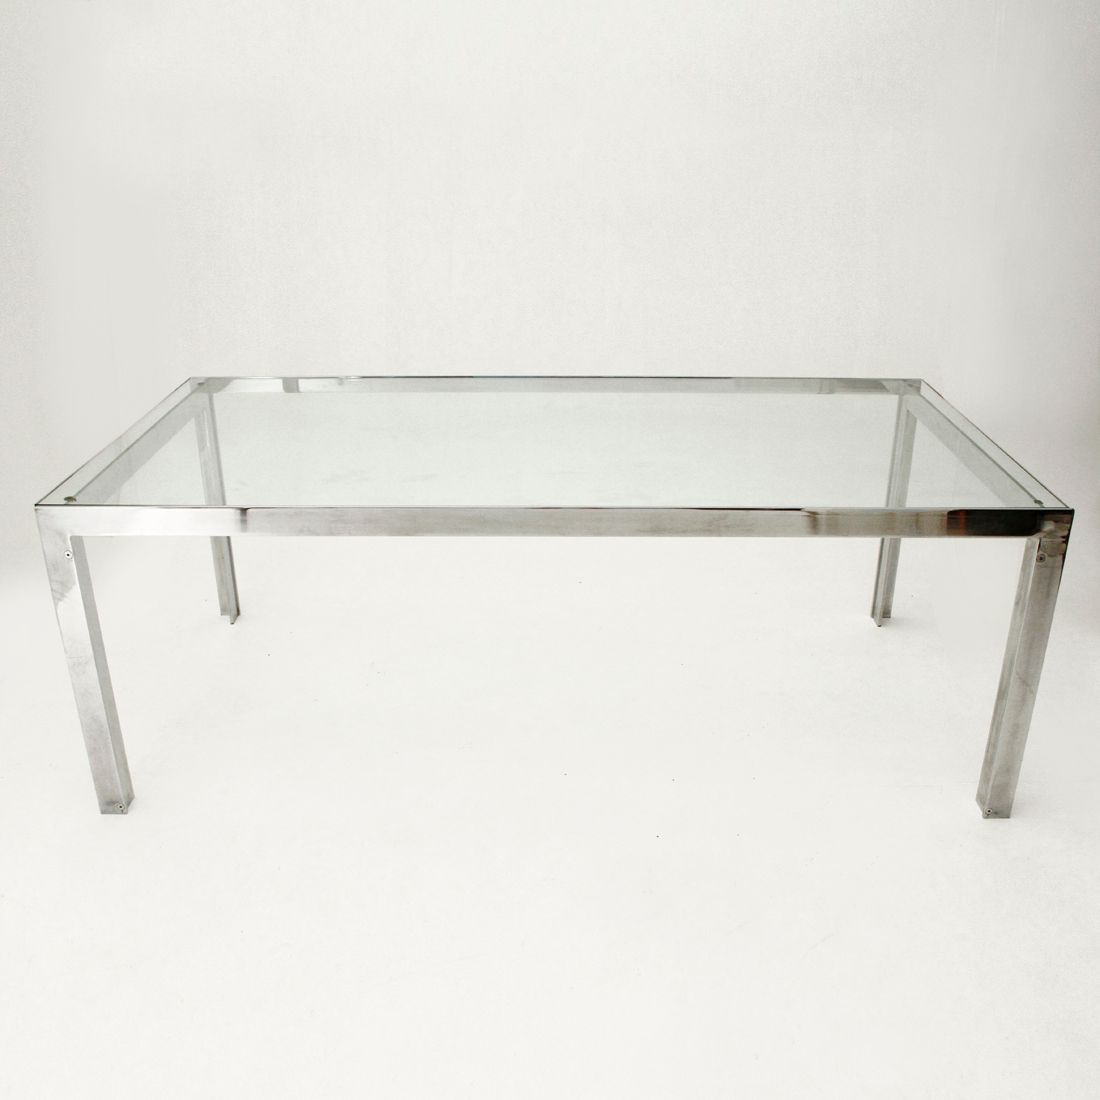 Vintage Italian Gl And Chrome Dining Table 1970s For At